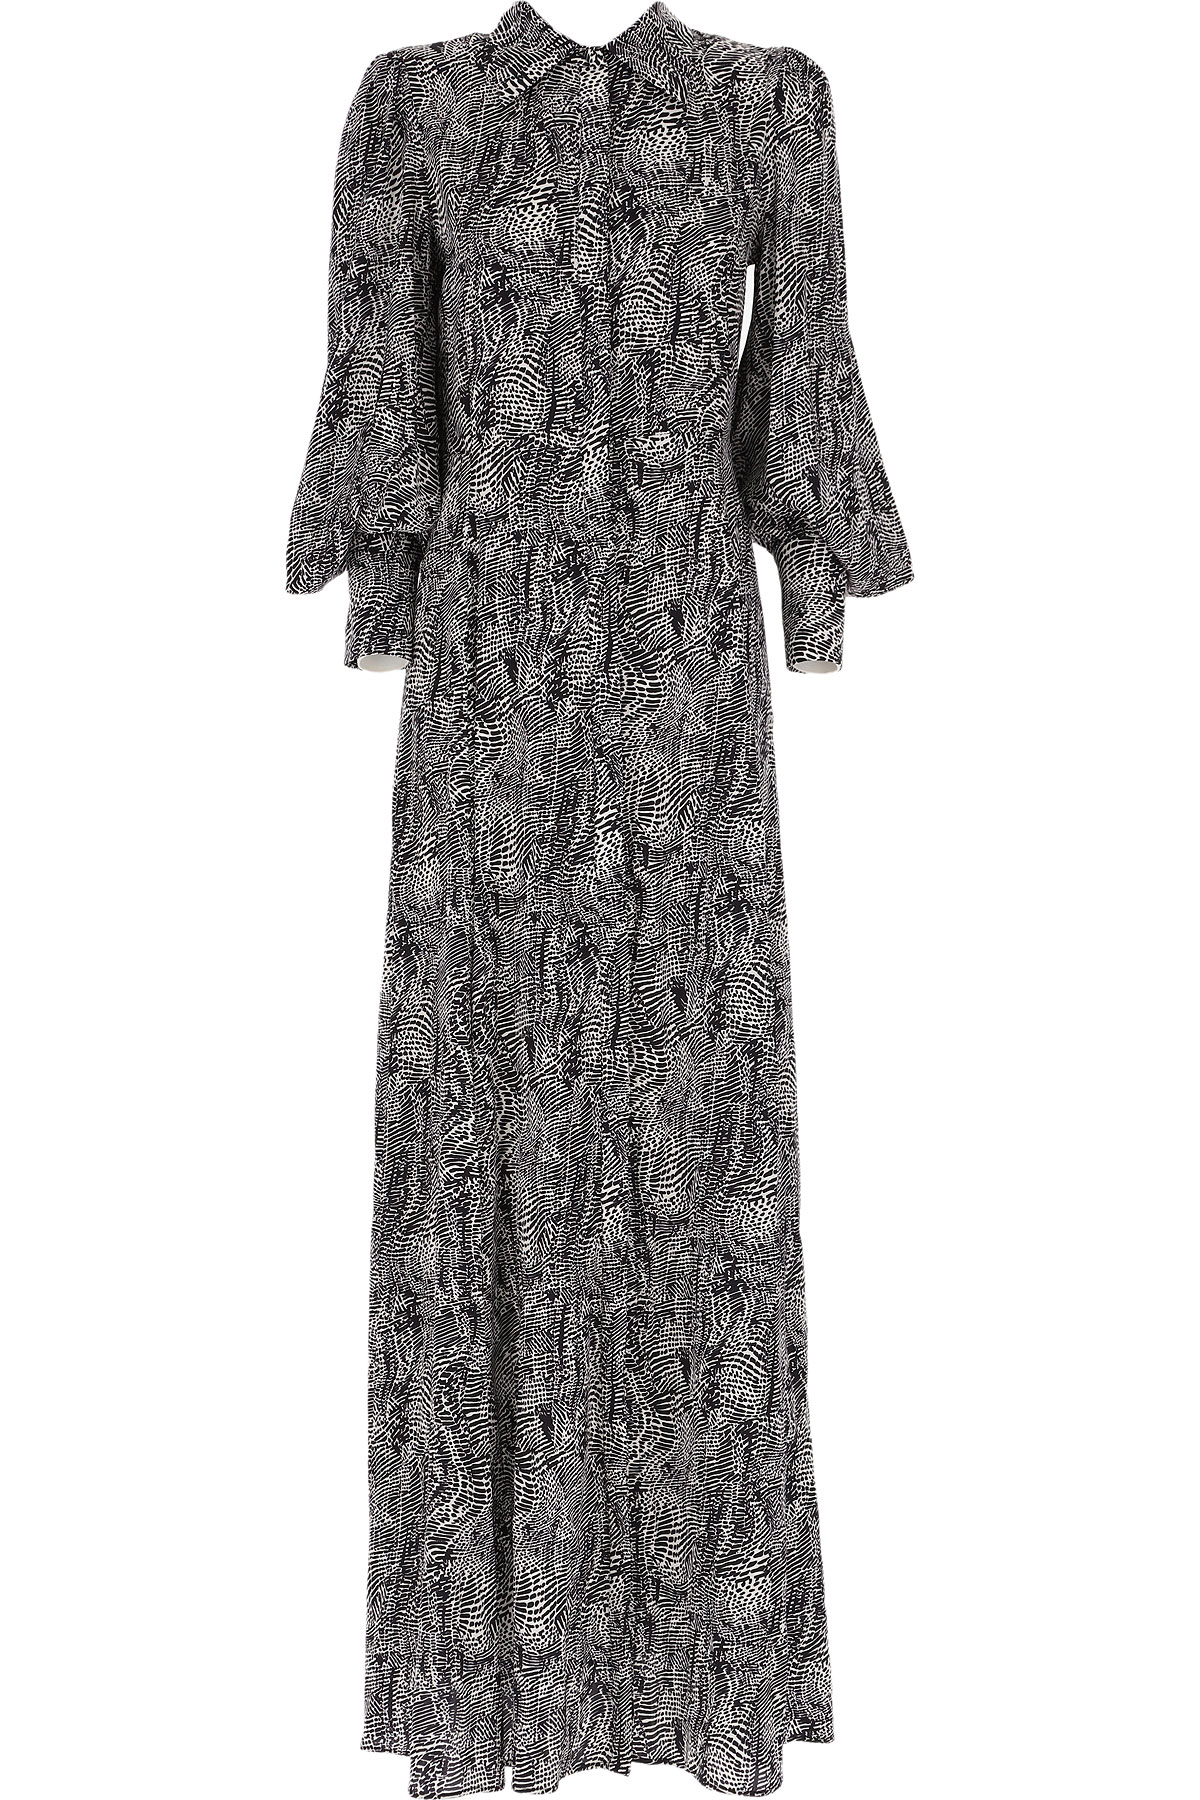 Federica Tosi Dress for Women, Evening Cocktail Party On Sale, Black, Silk, 2019, 2 4